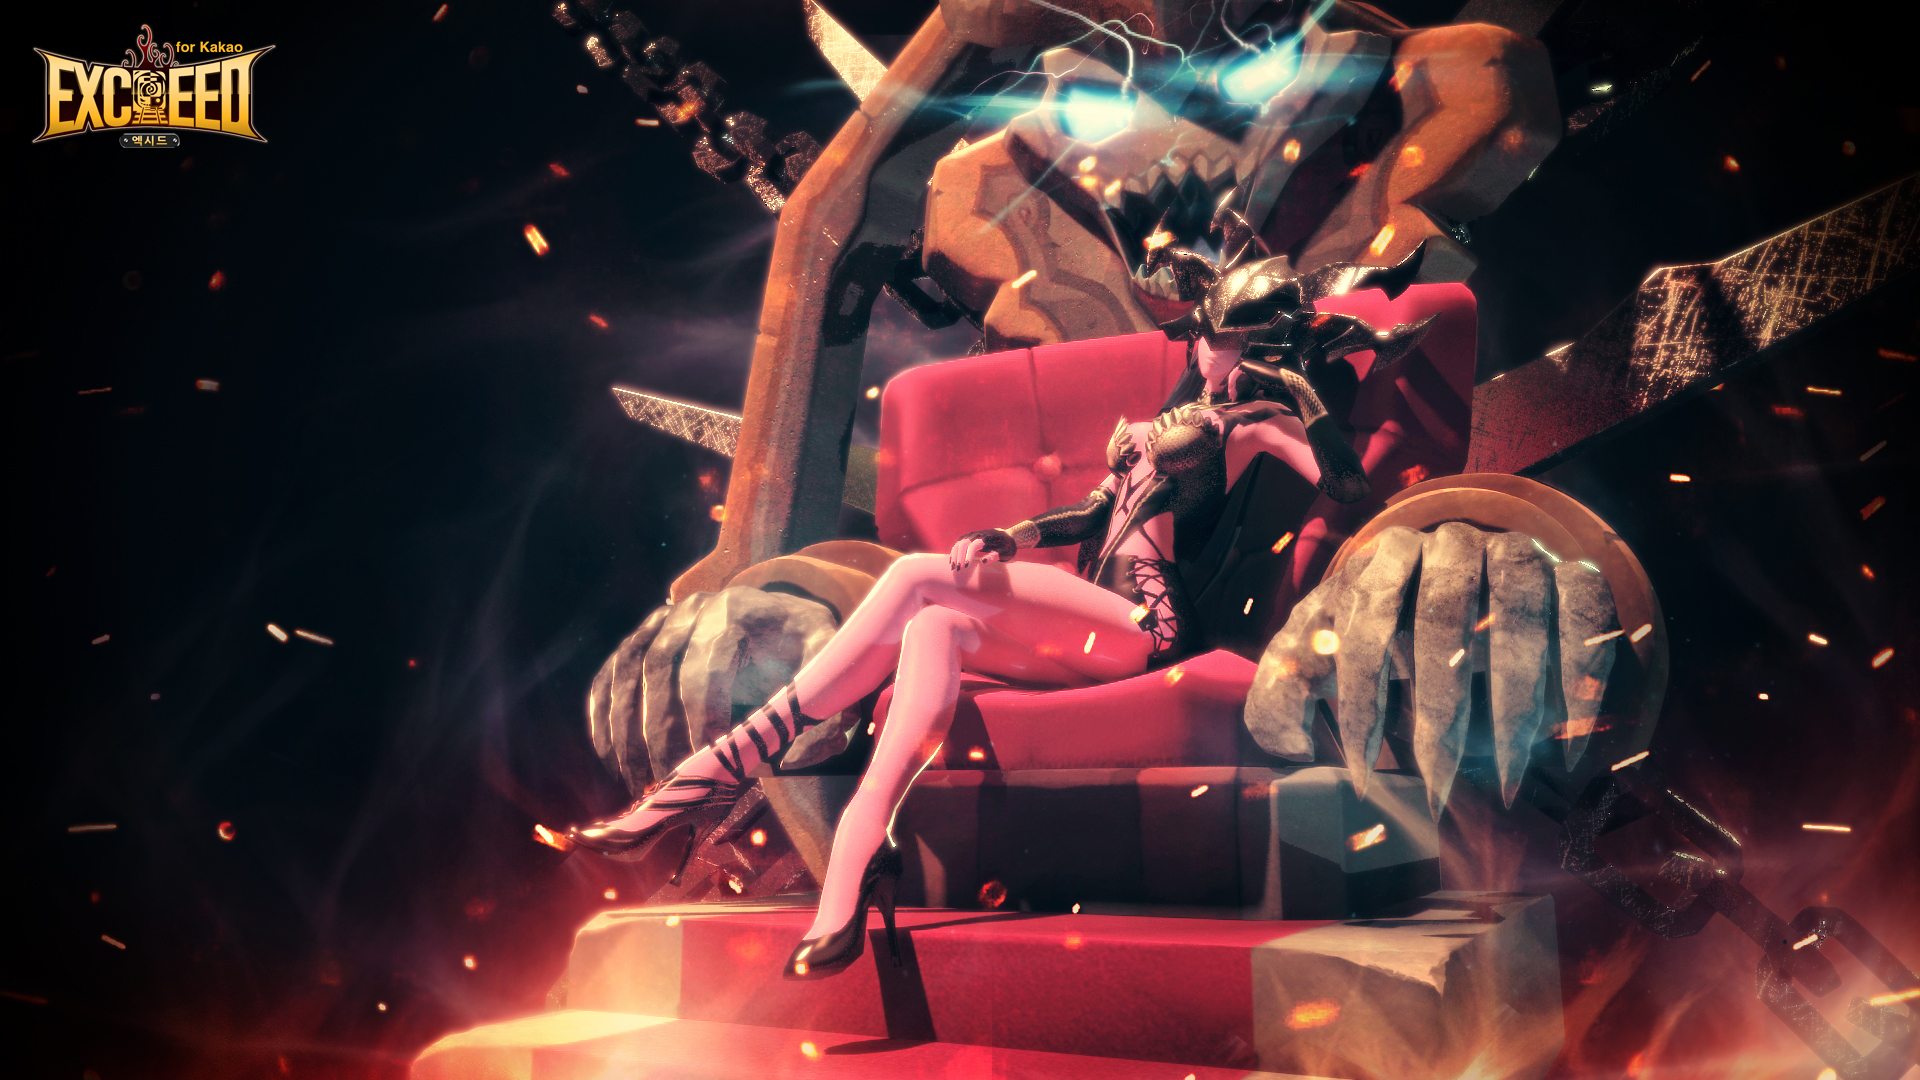 Exceed World Boss Image (2015)